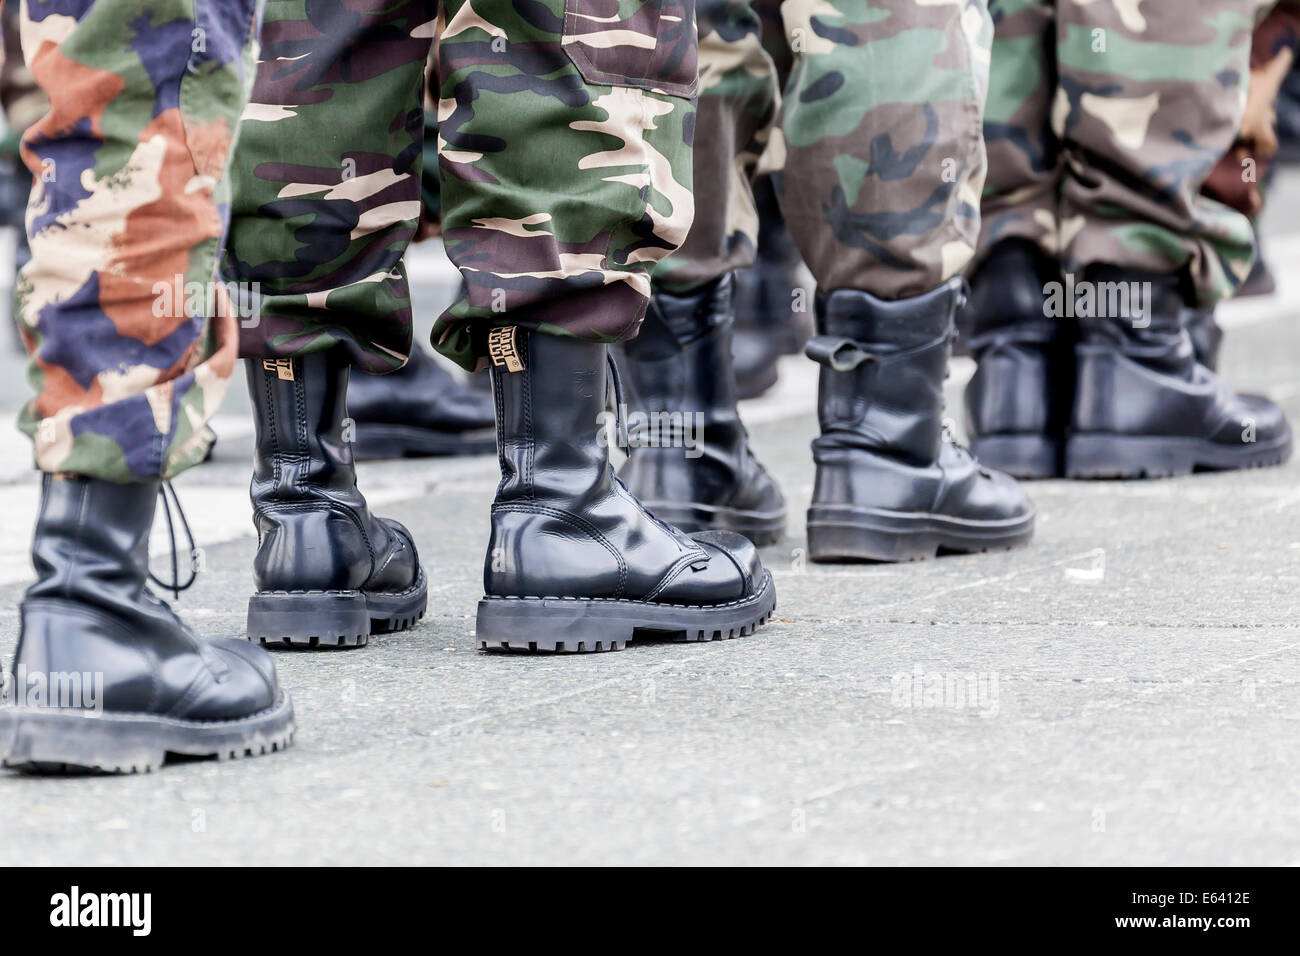 Members of a right-wing Hungarian party wearing combat boots, symbolic image for right-wing extremism, Budapest, Stock Photo